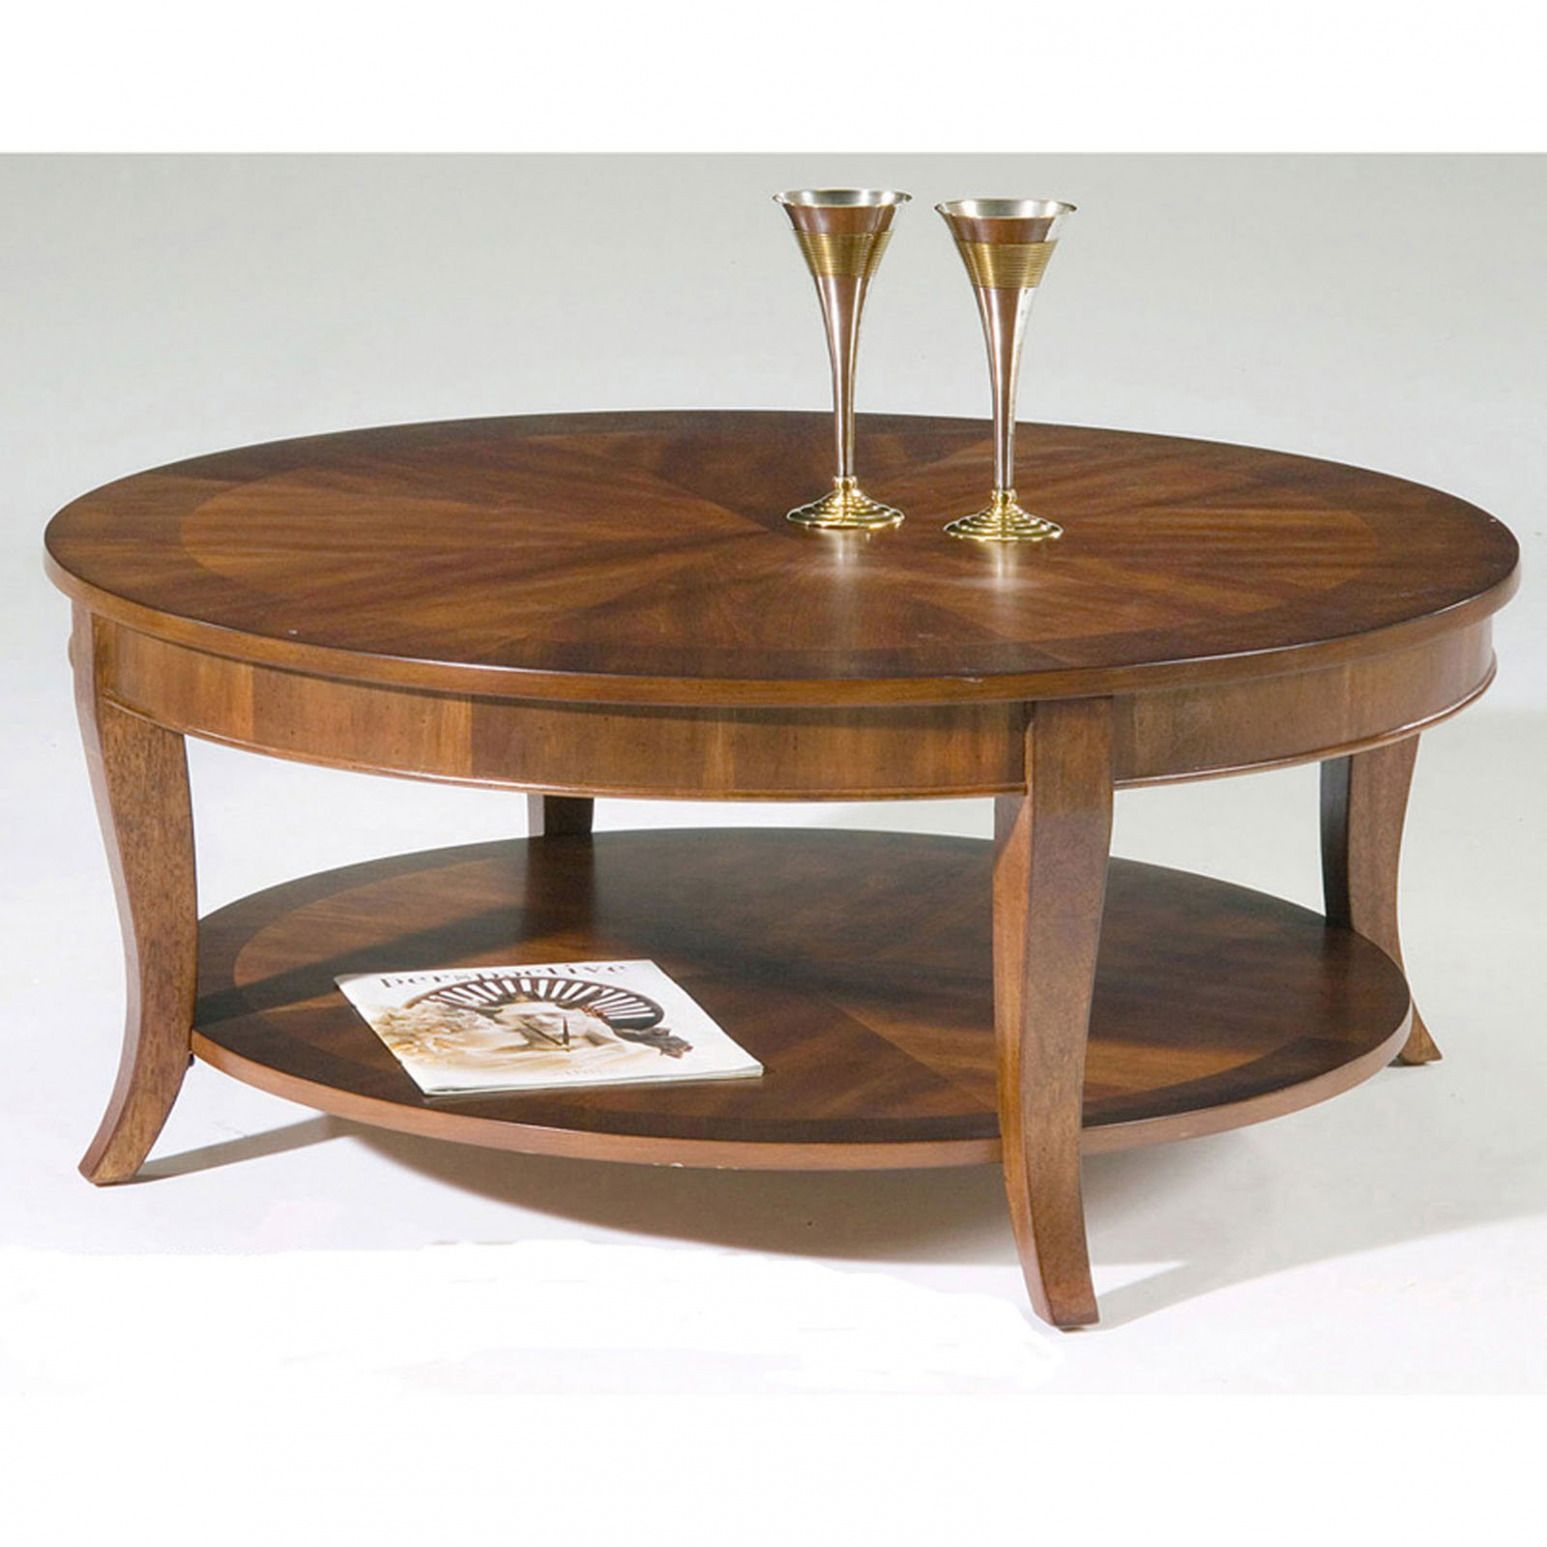 100 Round Coffe Tables Best Master Furniture Check More At Http Livelylighting Com Roun Target Coffee Table Circular Coffee Table Cherry Wood Coffee Table [ 1547 x 1547 Pixel ]